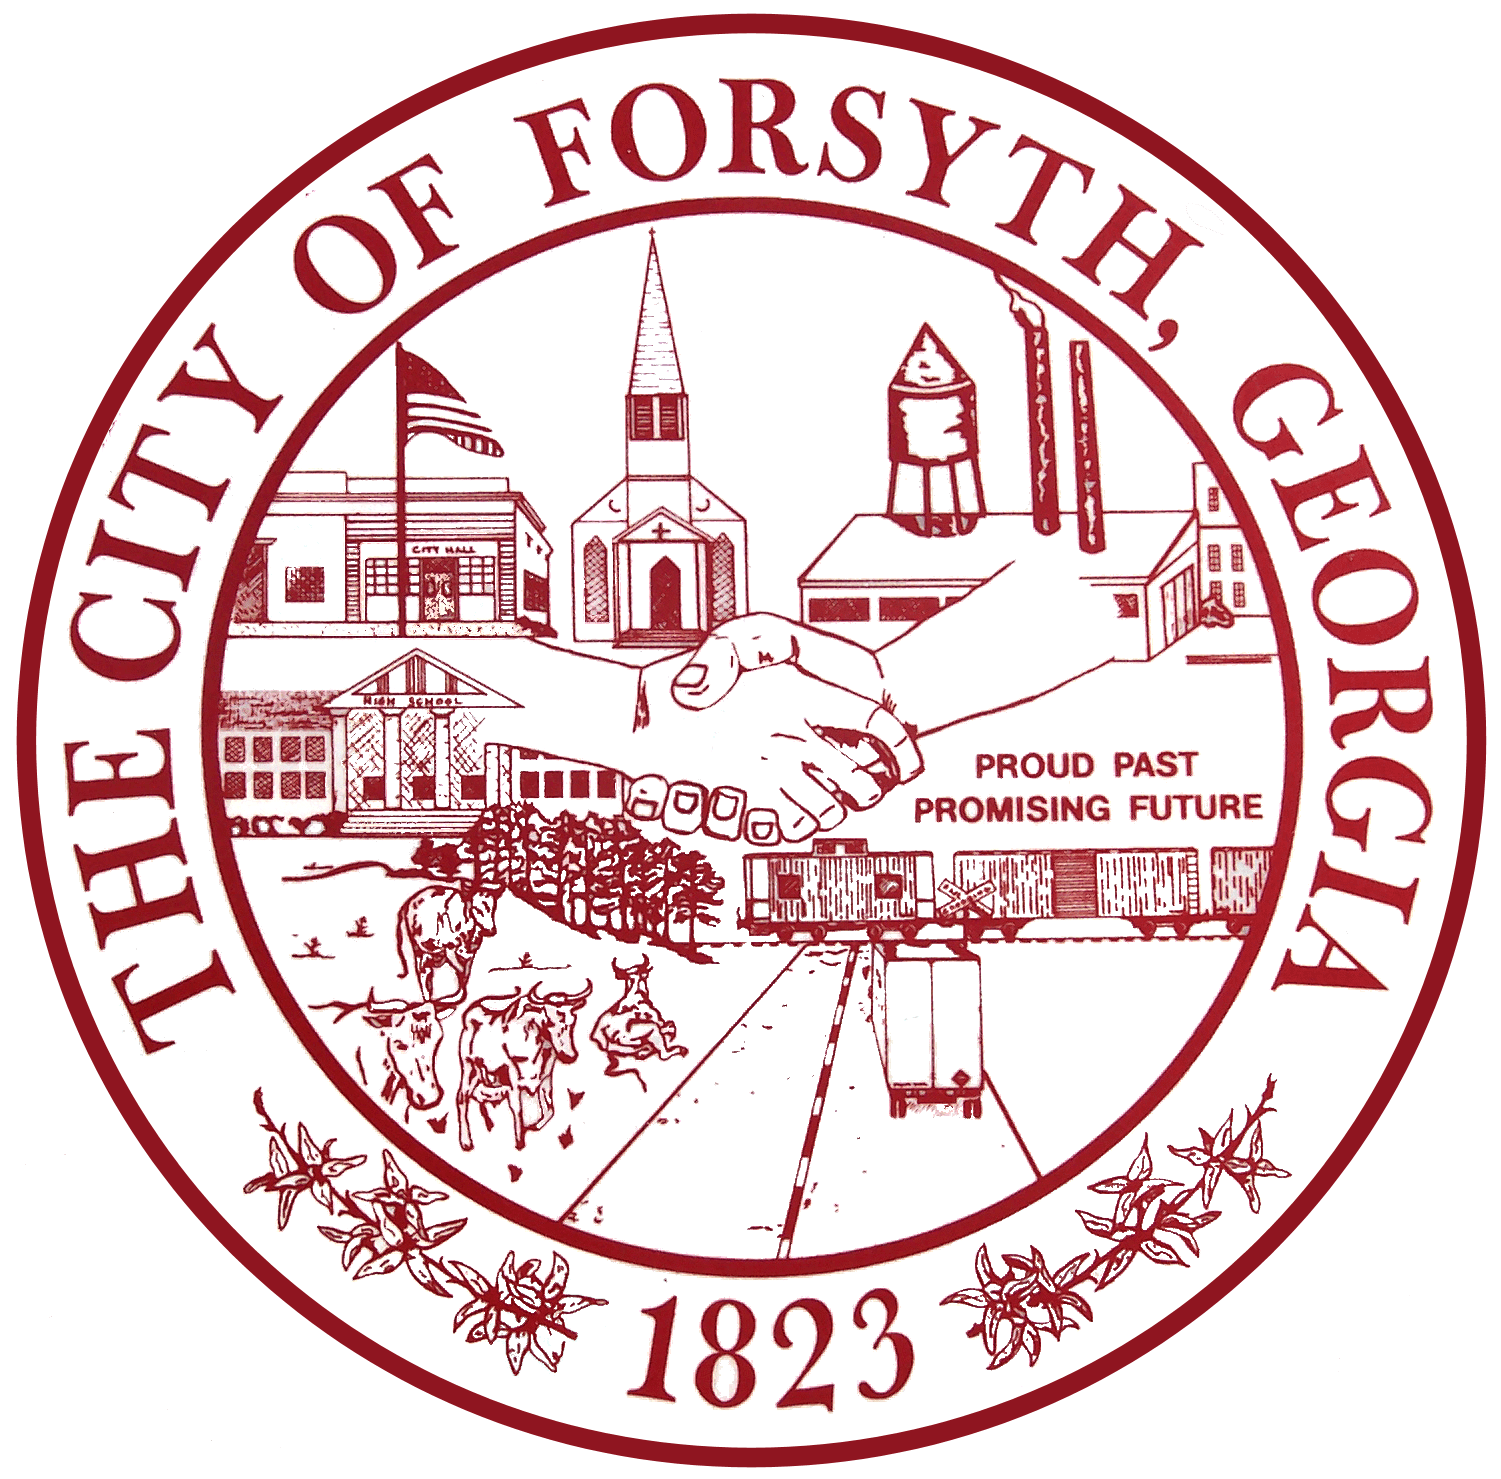 City of Forsyth | Official Website of the City of Forsyth